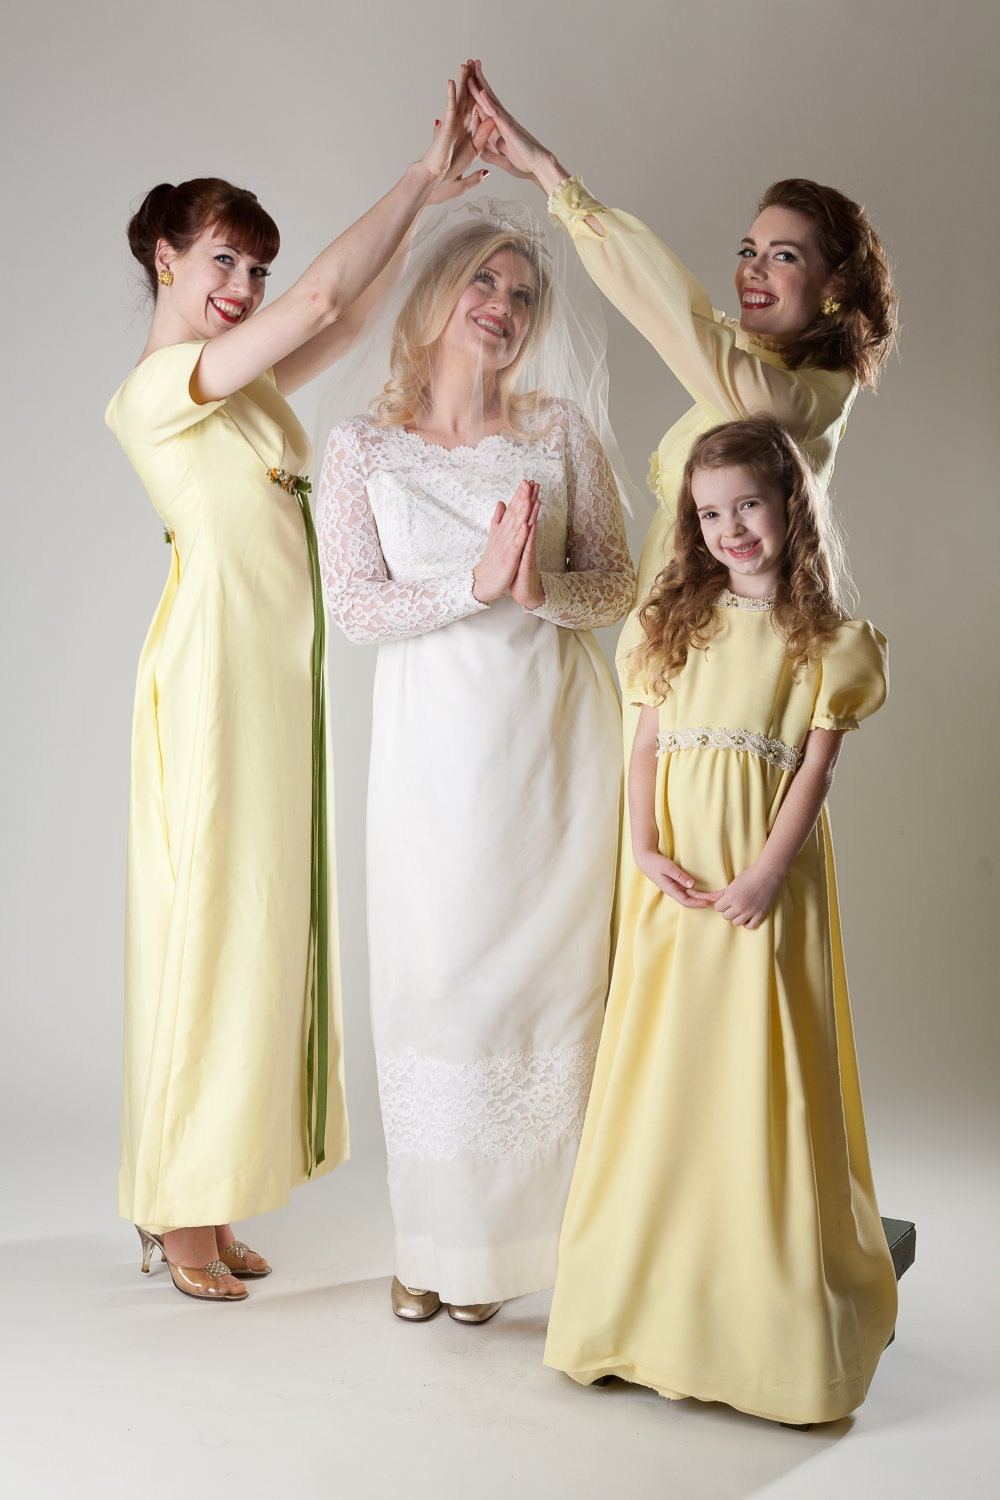 Vintage 1960s yellow bridesmaid dresses set of three 1970s Wedding dress 1960